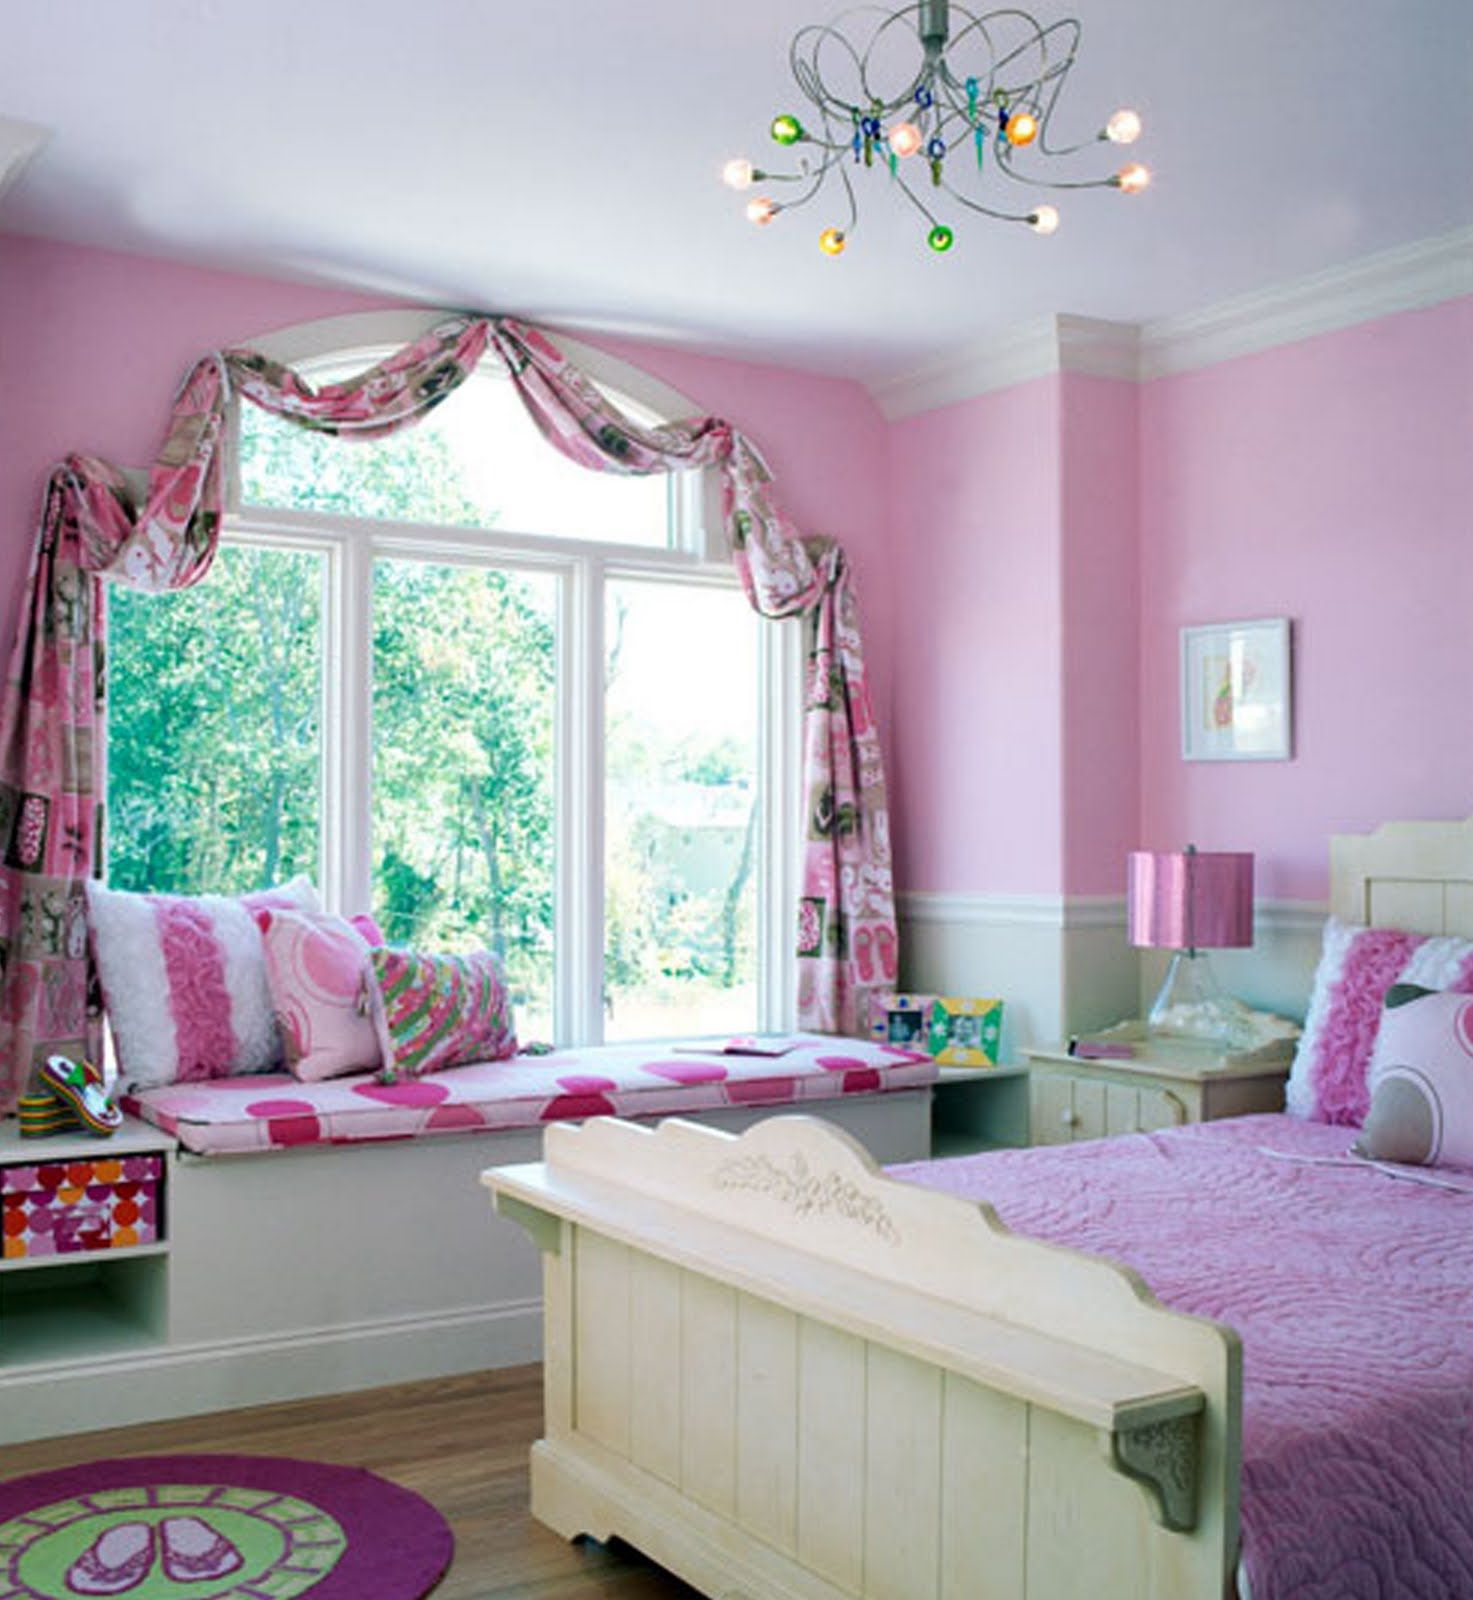 Bedroom designer for girls - Charming Pink And White Themes Design Room For Teenage Girls With Large Window Types That Have